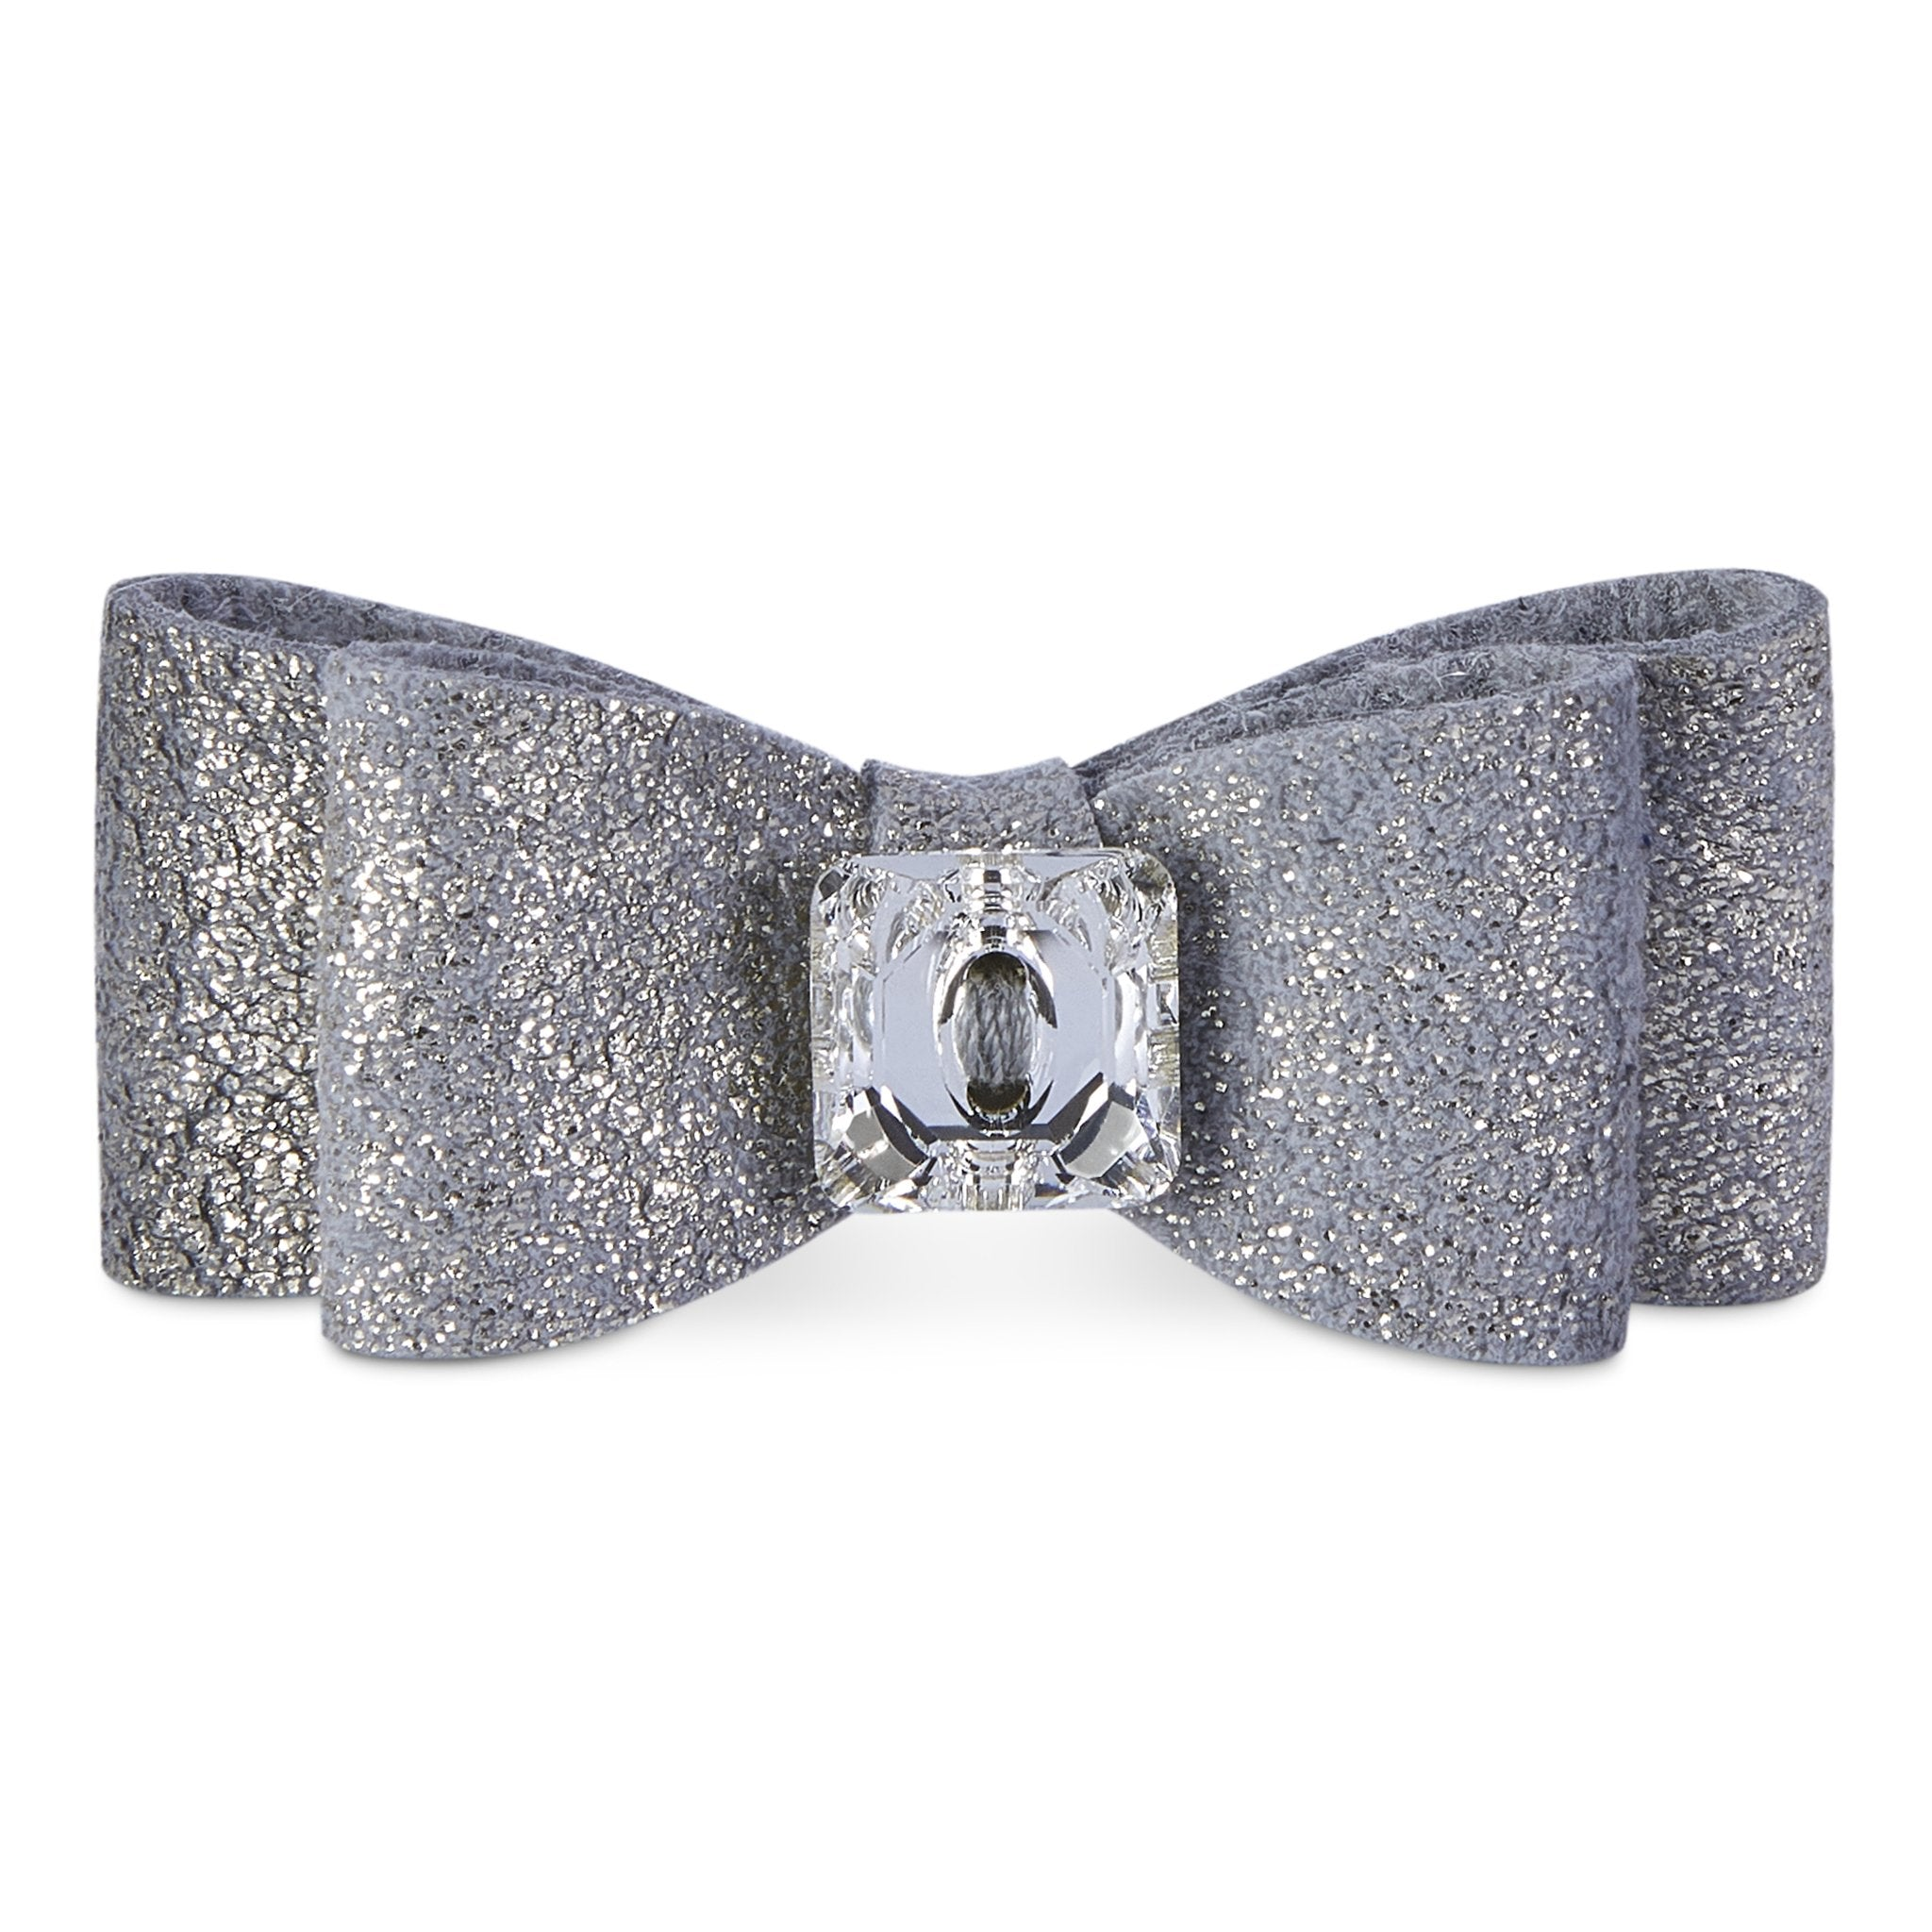 Dog Bows - Platinum Glitzerati Big Bow Dog Hair Bows by Susan Lanci Designs